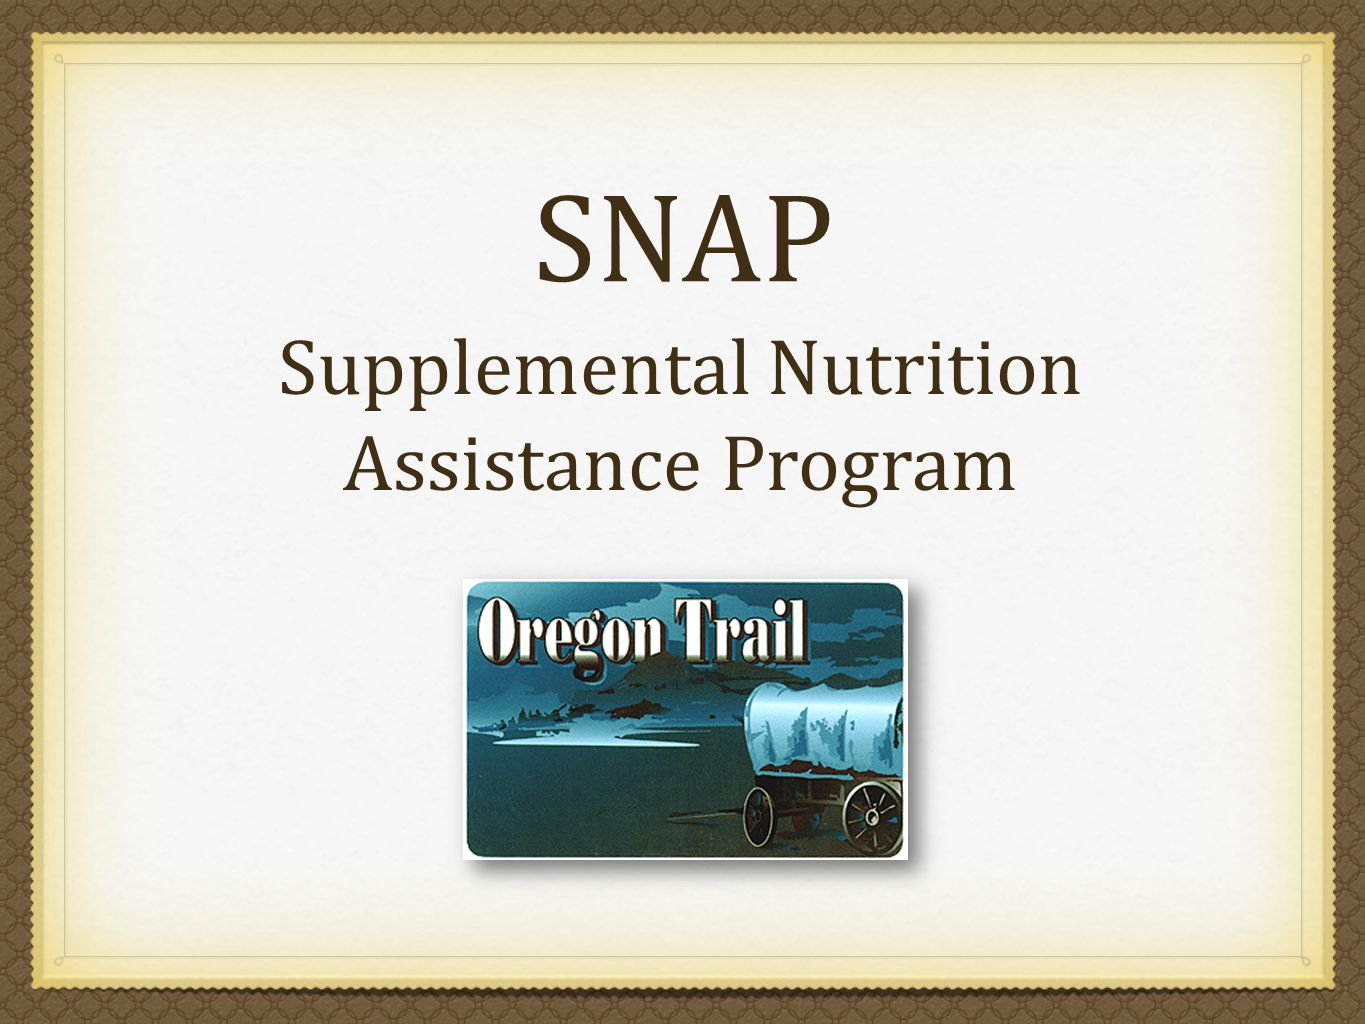 SNAP Supplemental Nutrition Assistance Program